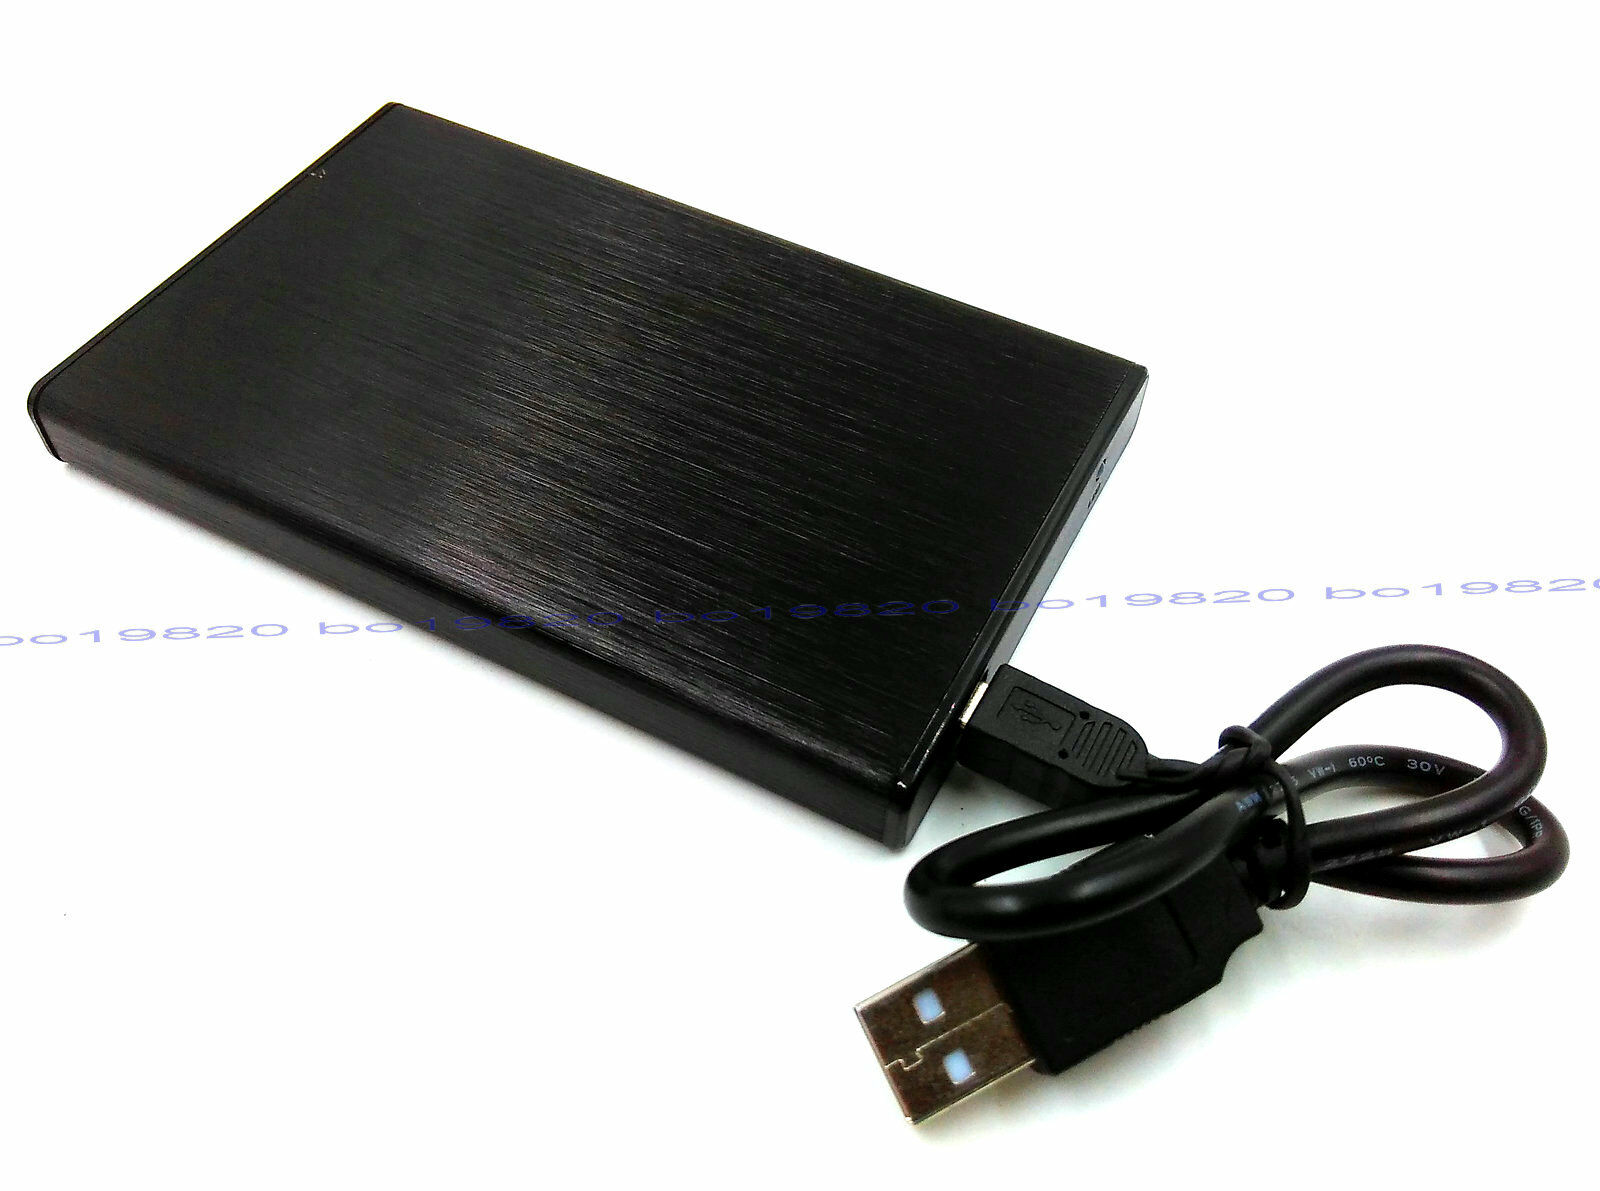 Black New 160 Gb External Portable 25 Usb 20 Hard Drive Hdd Pouch Harddisk 1 Of 2free Shipping